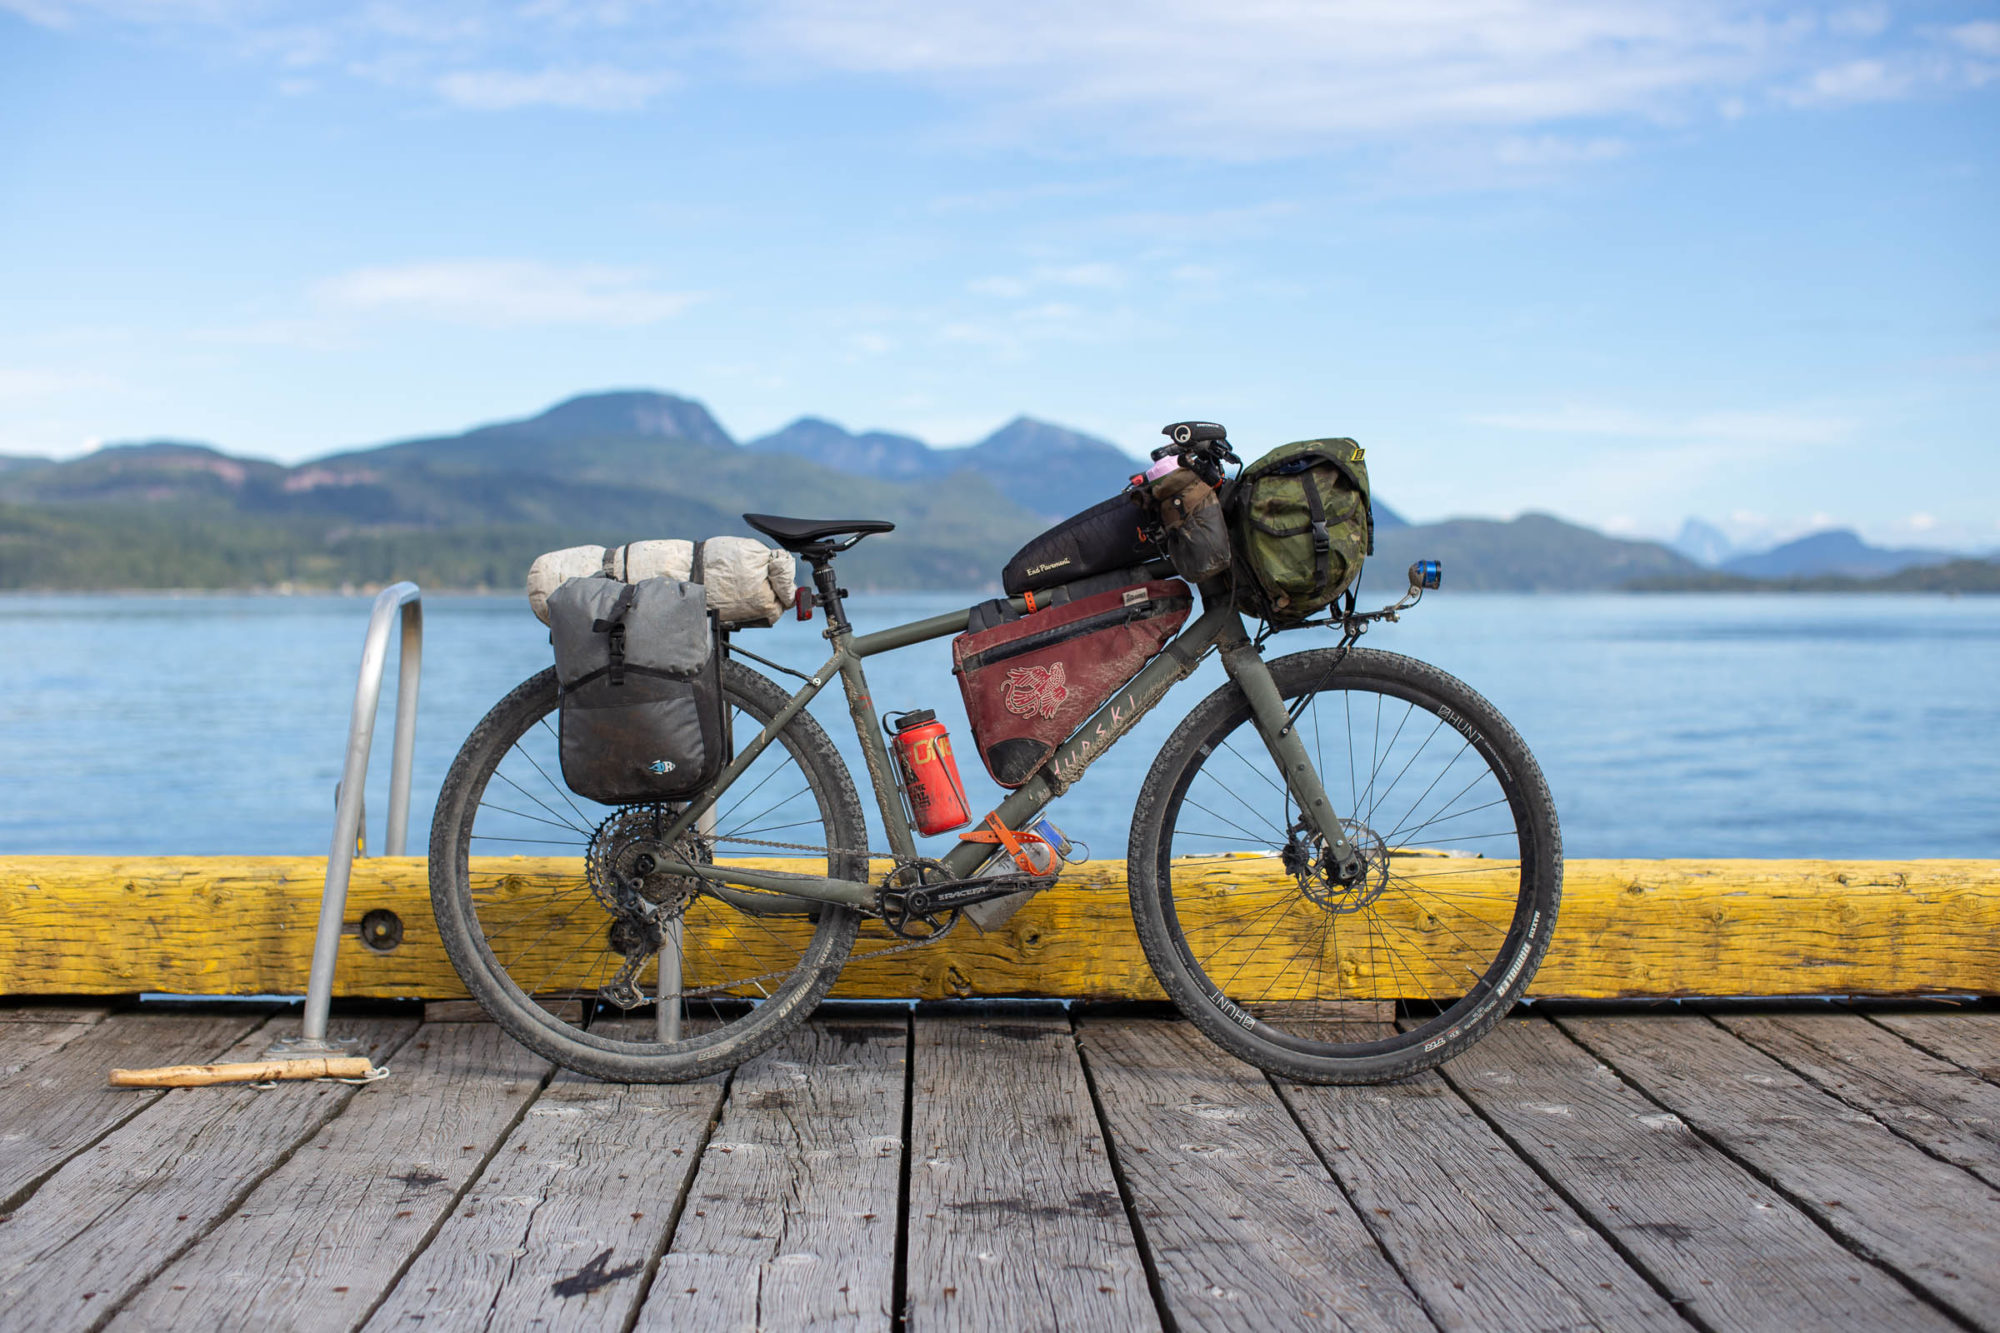 Bikepacking bike on a wooden doc in front of a lake.